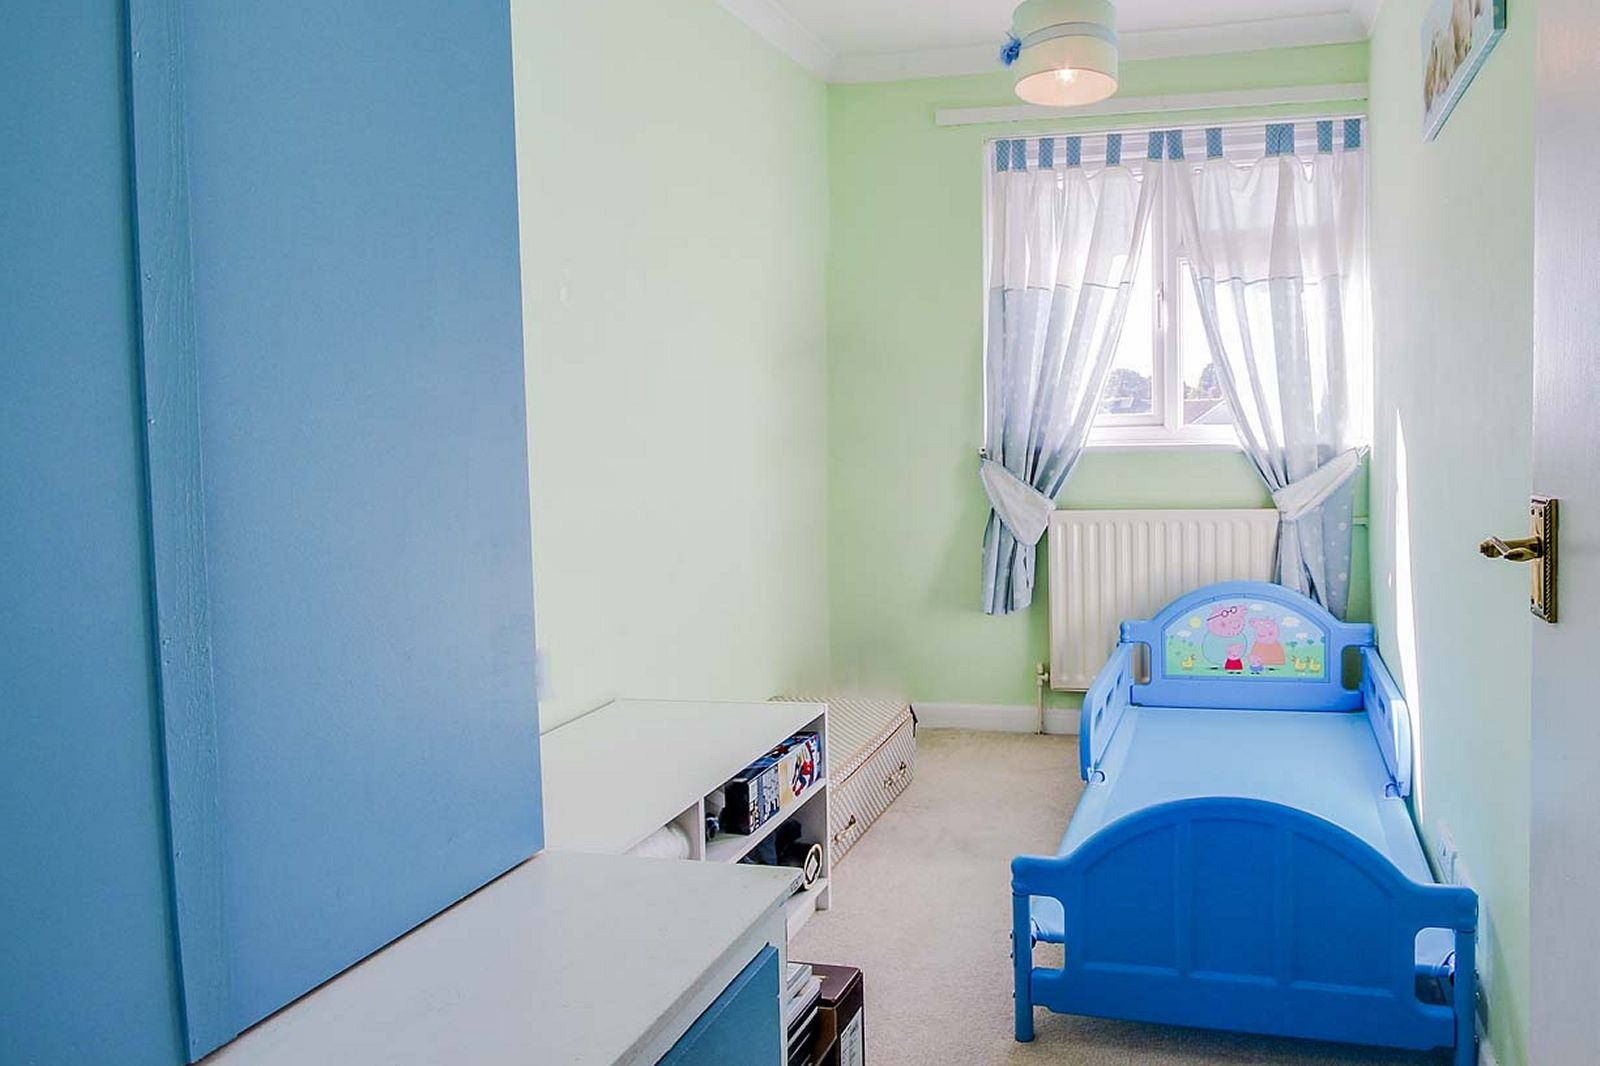 3 bed House for sale in East Preston - Bedroom (Property Image 7)